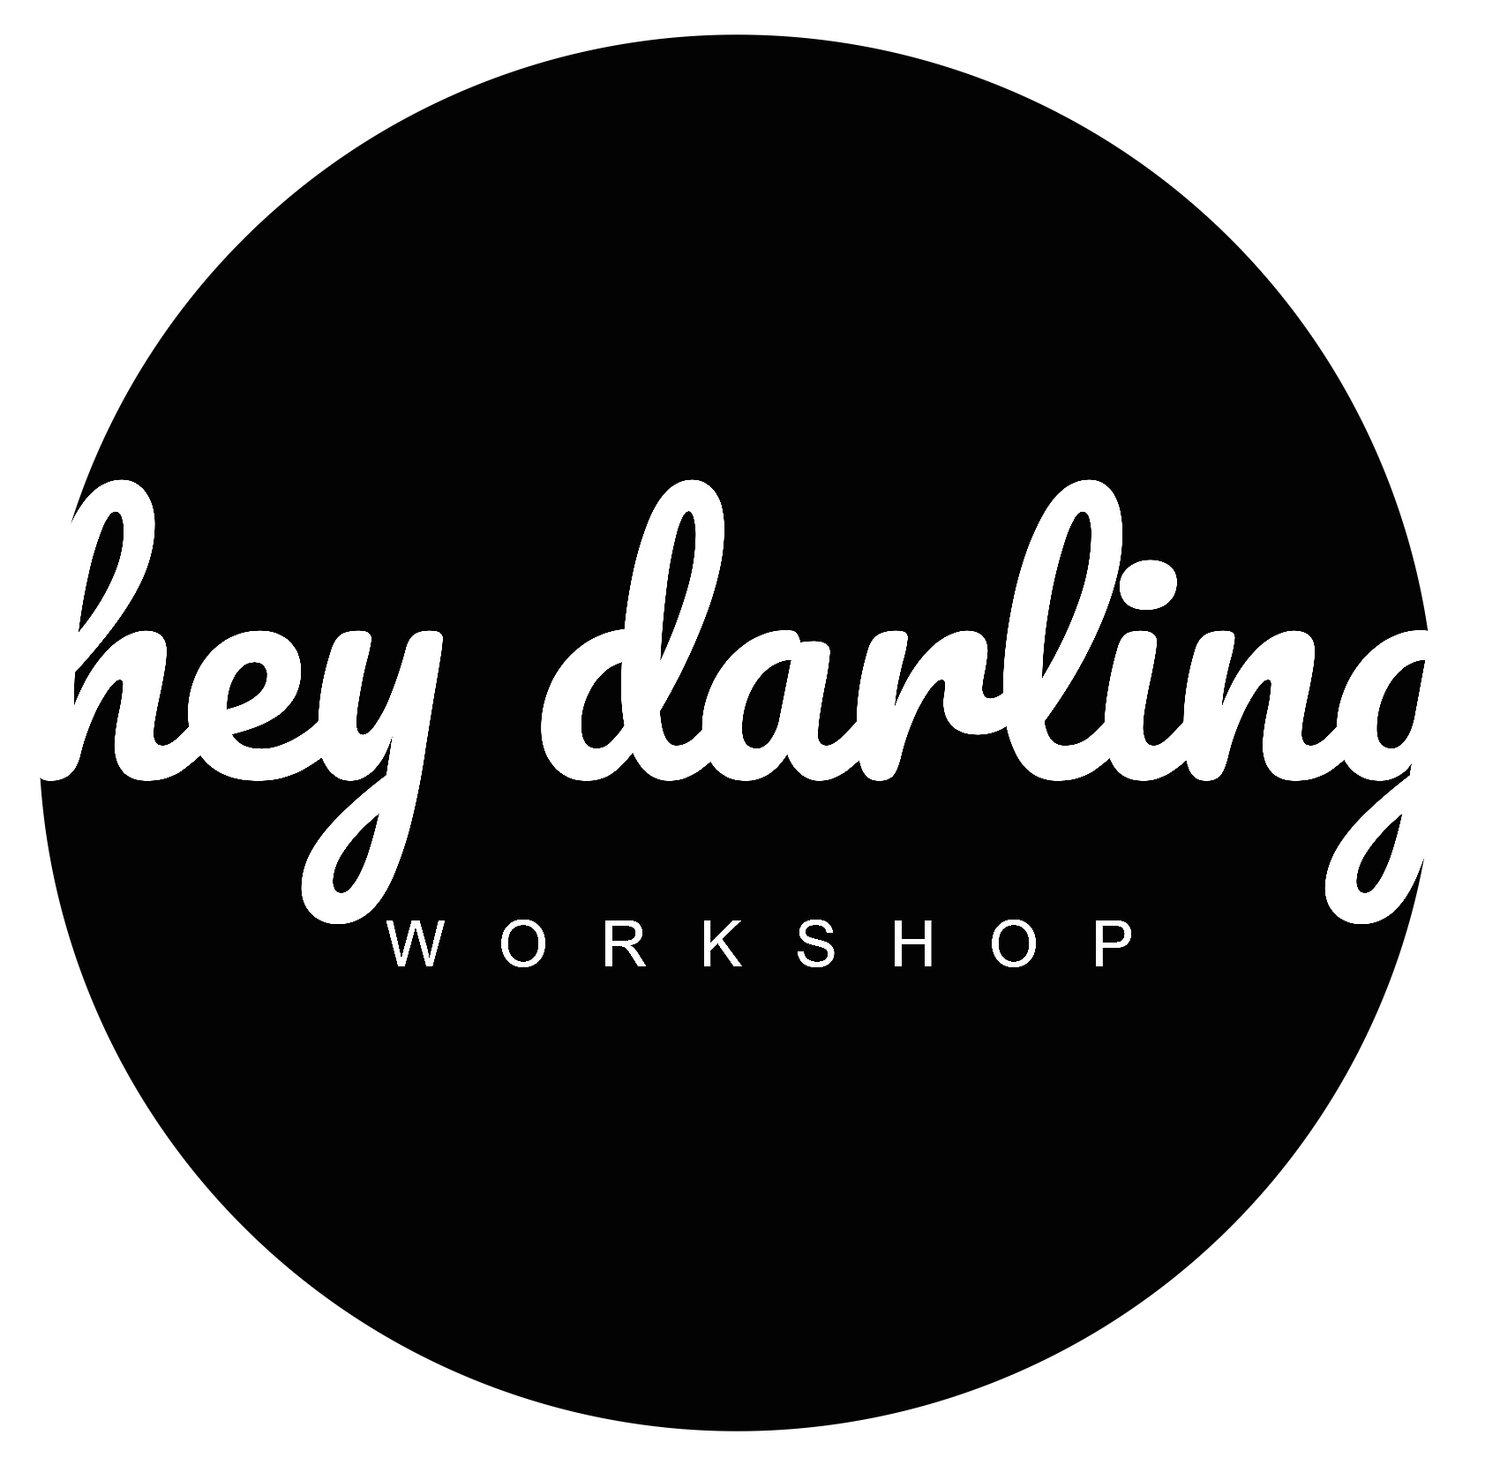 Hey Darling Workshop